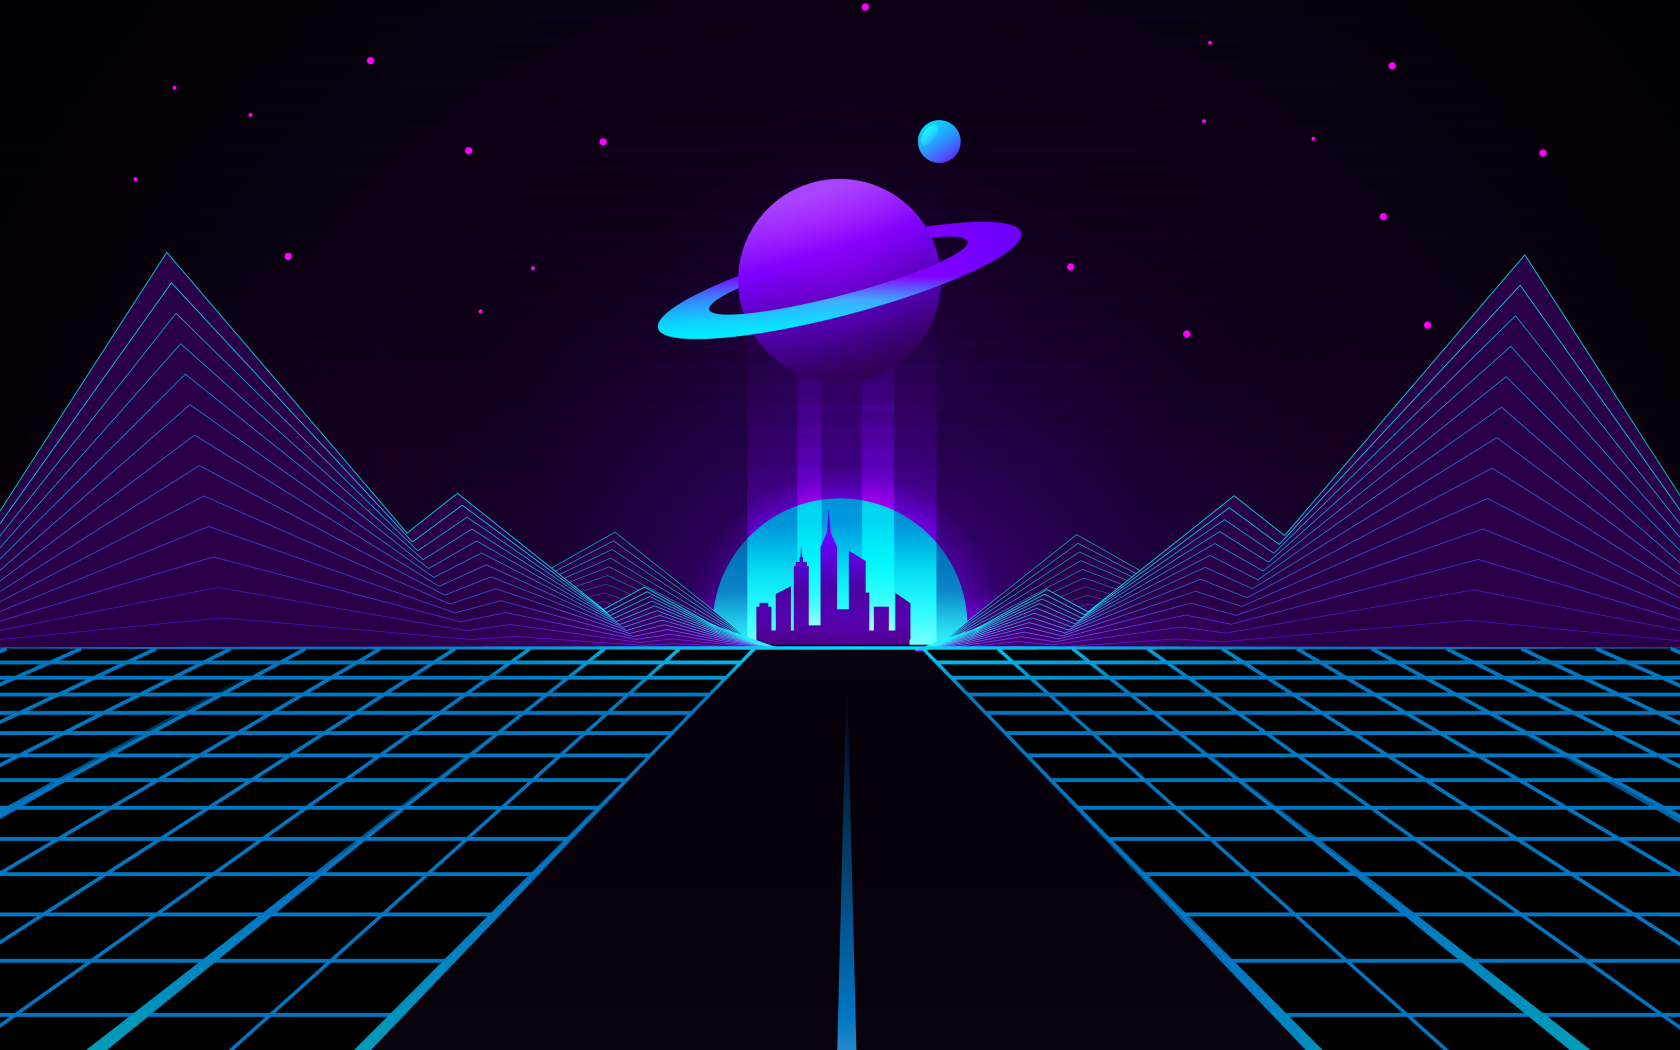 1680x1050 Synthwave Planet Retro Wave 1680x1050 Resolution ...